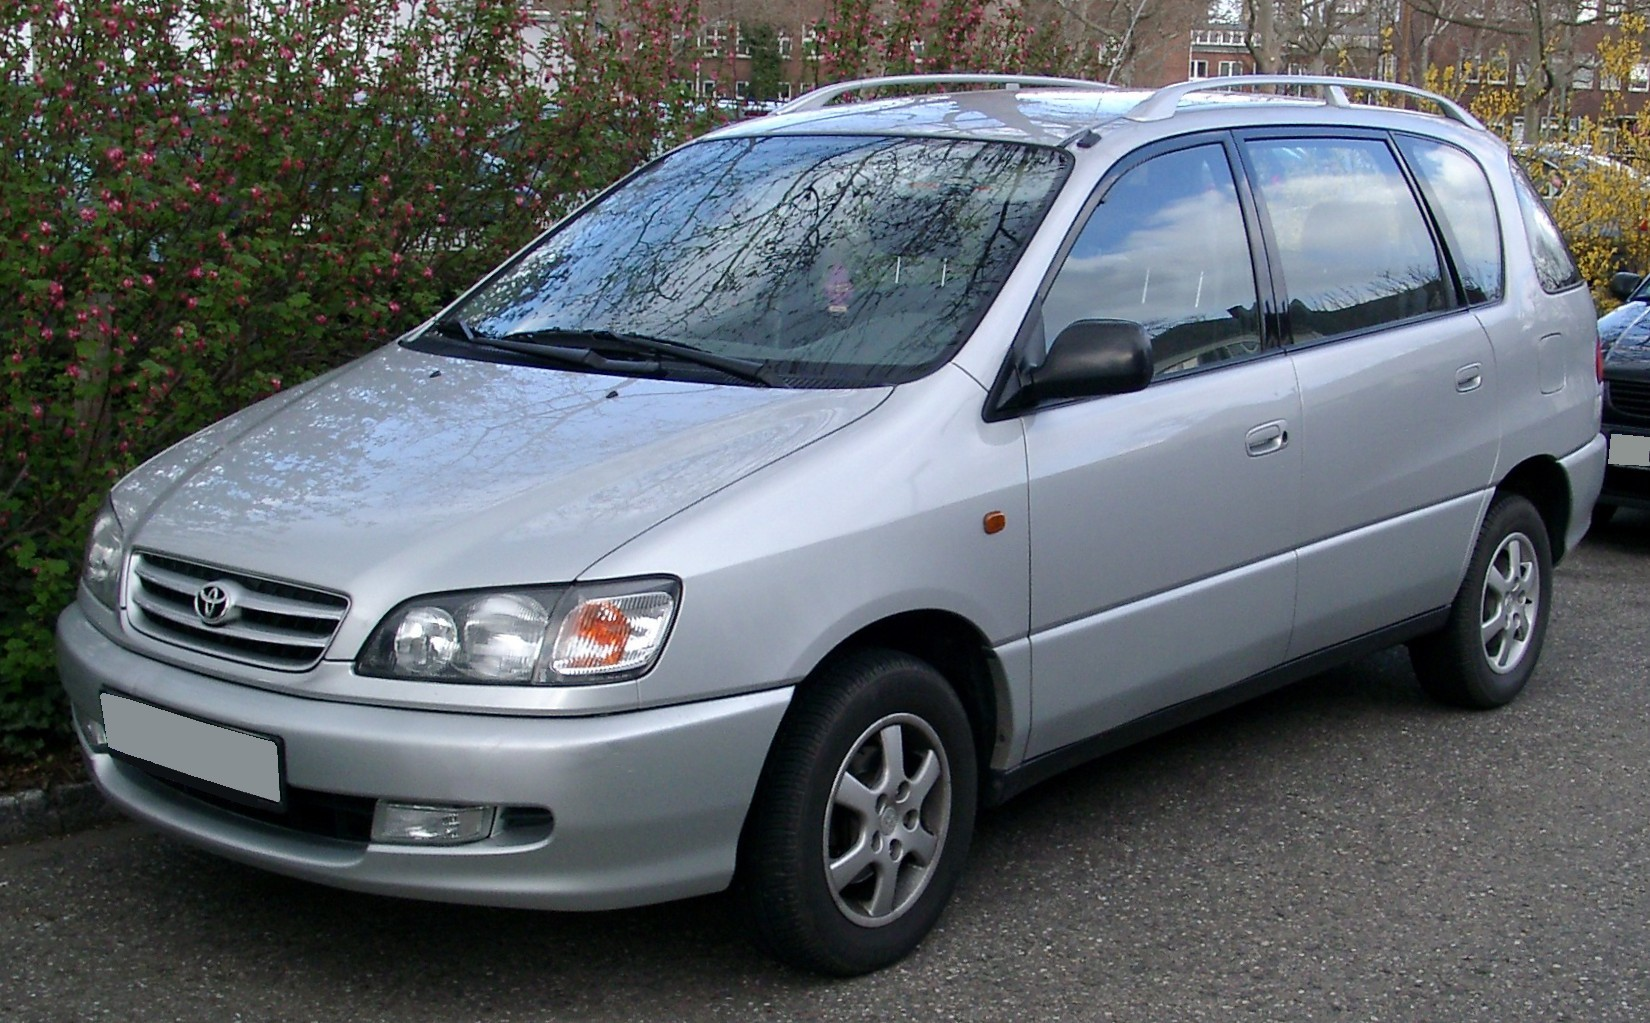 Toyota nadia 2005 photo - 3